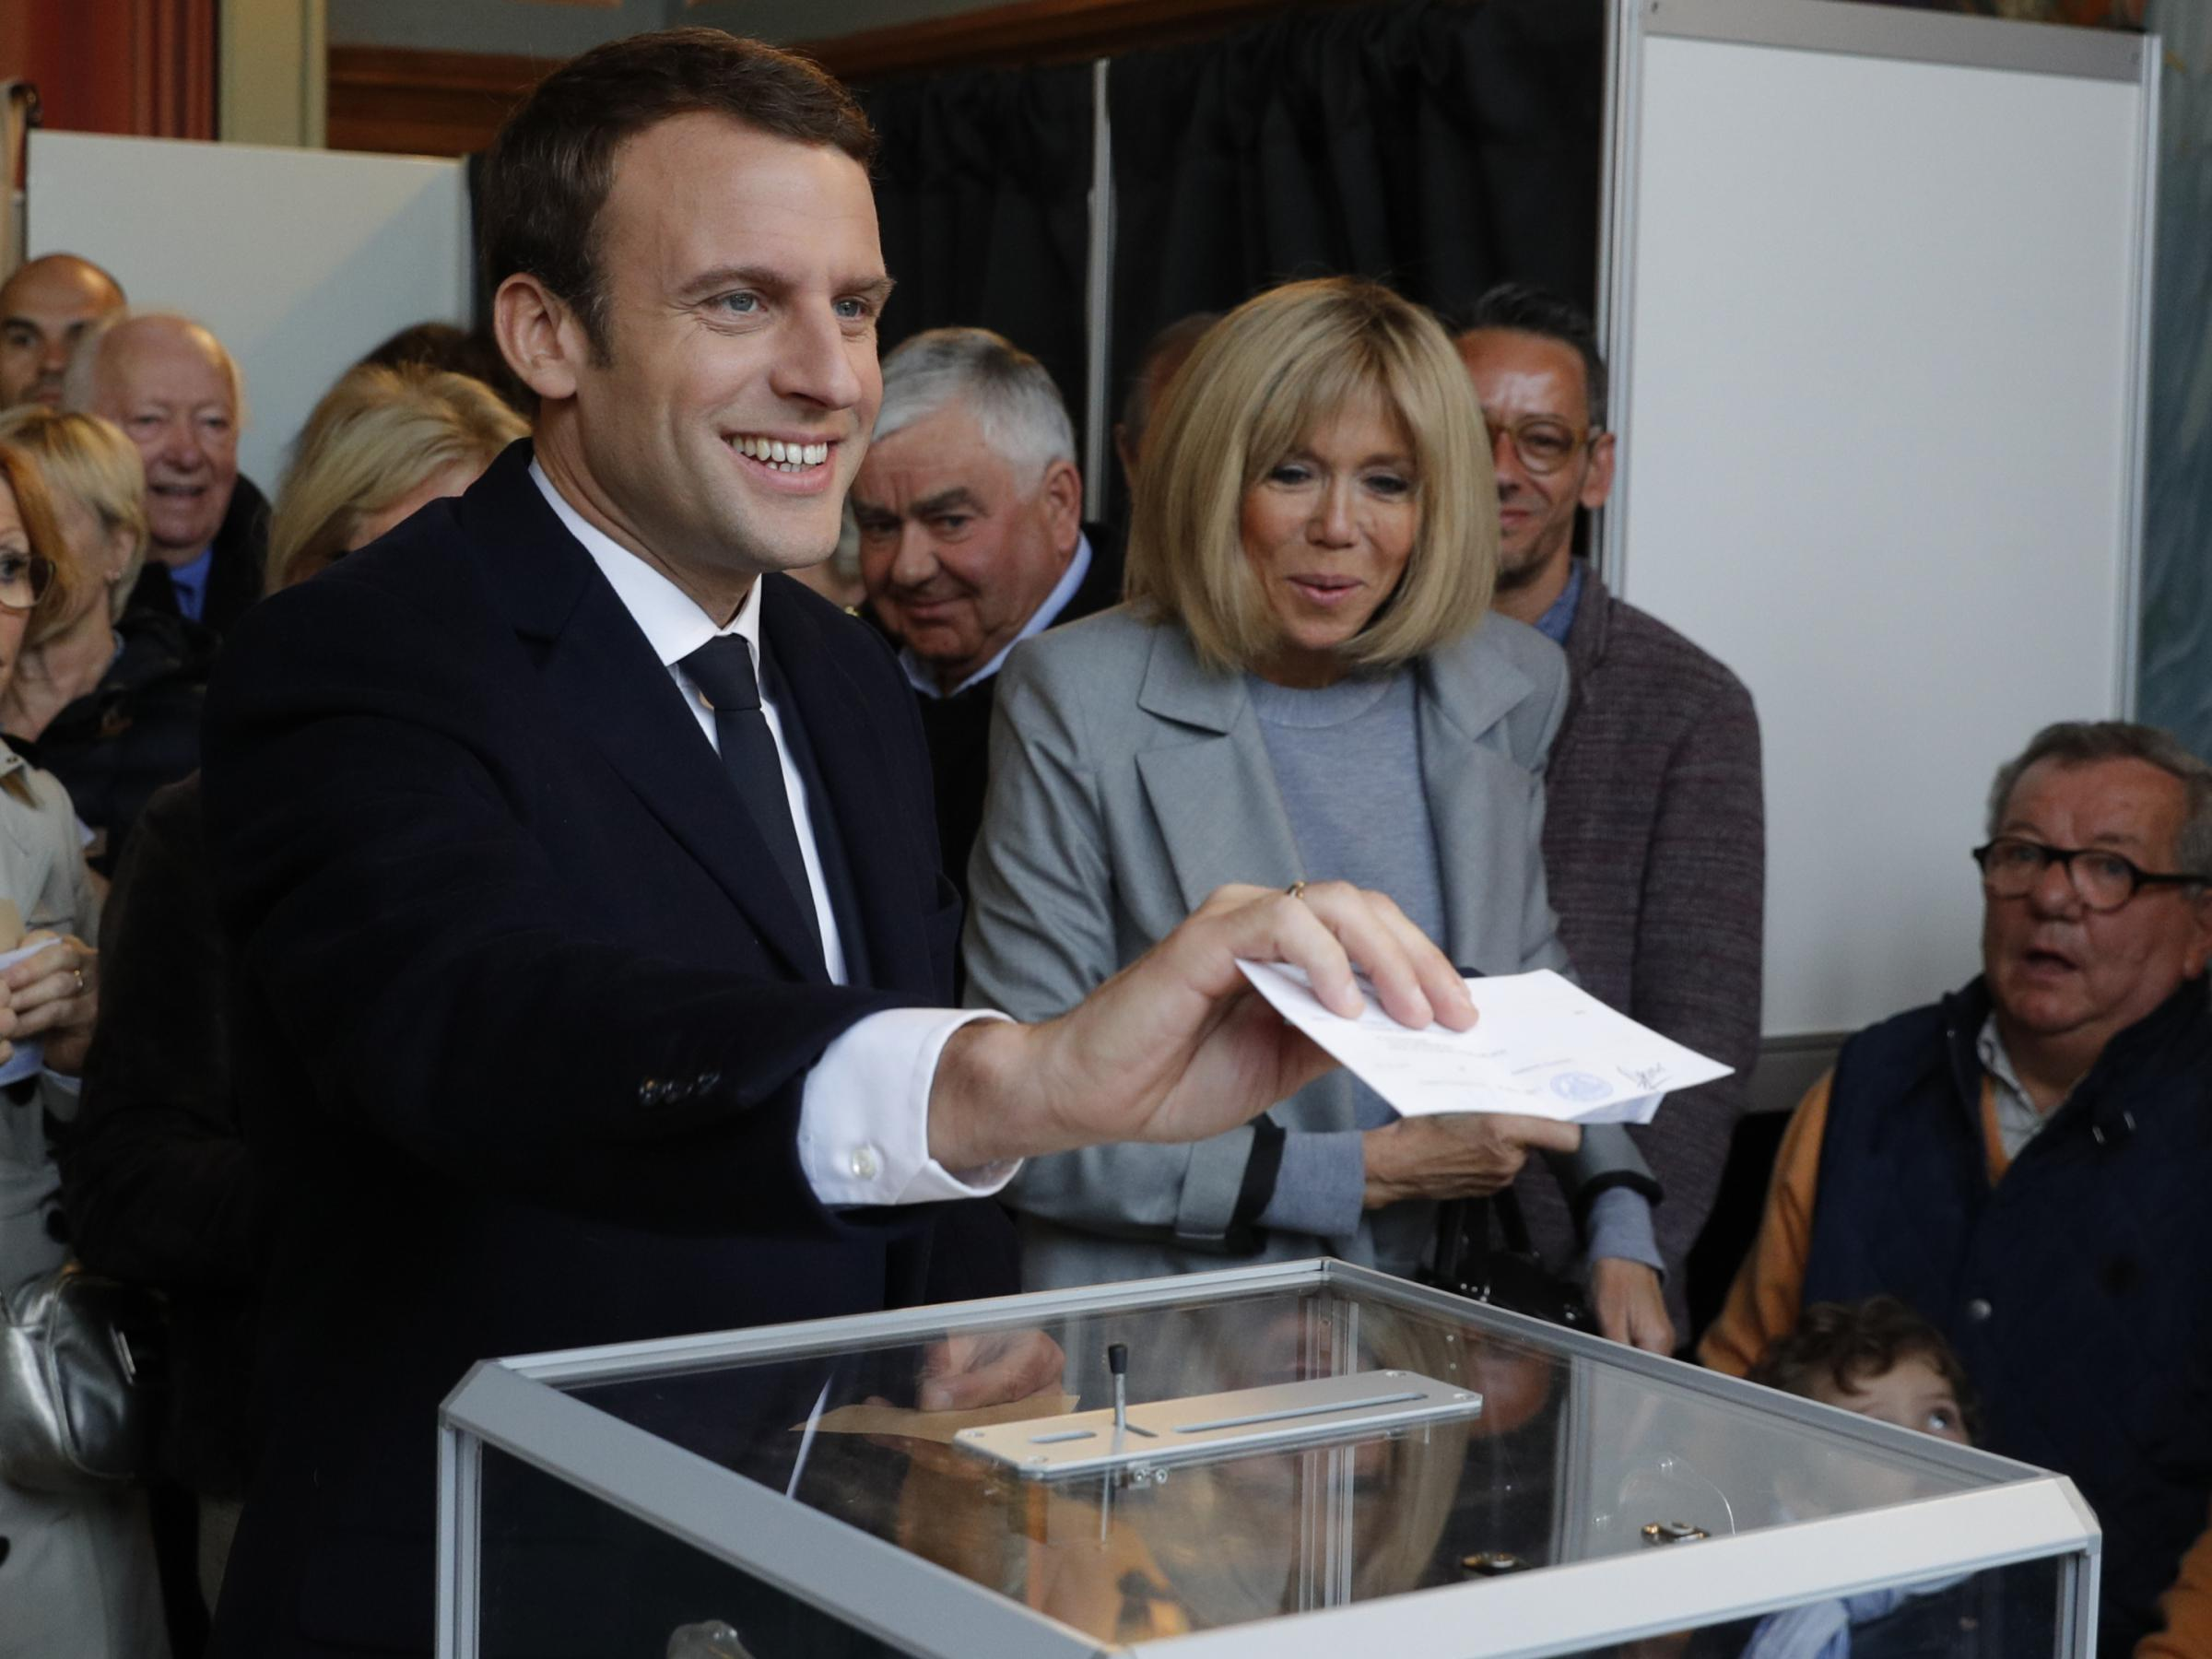 Macron, Le Pen Expected To Advance To French Presidential Runoff